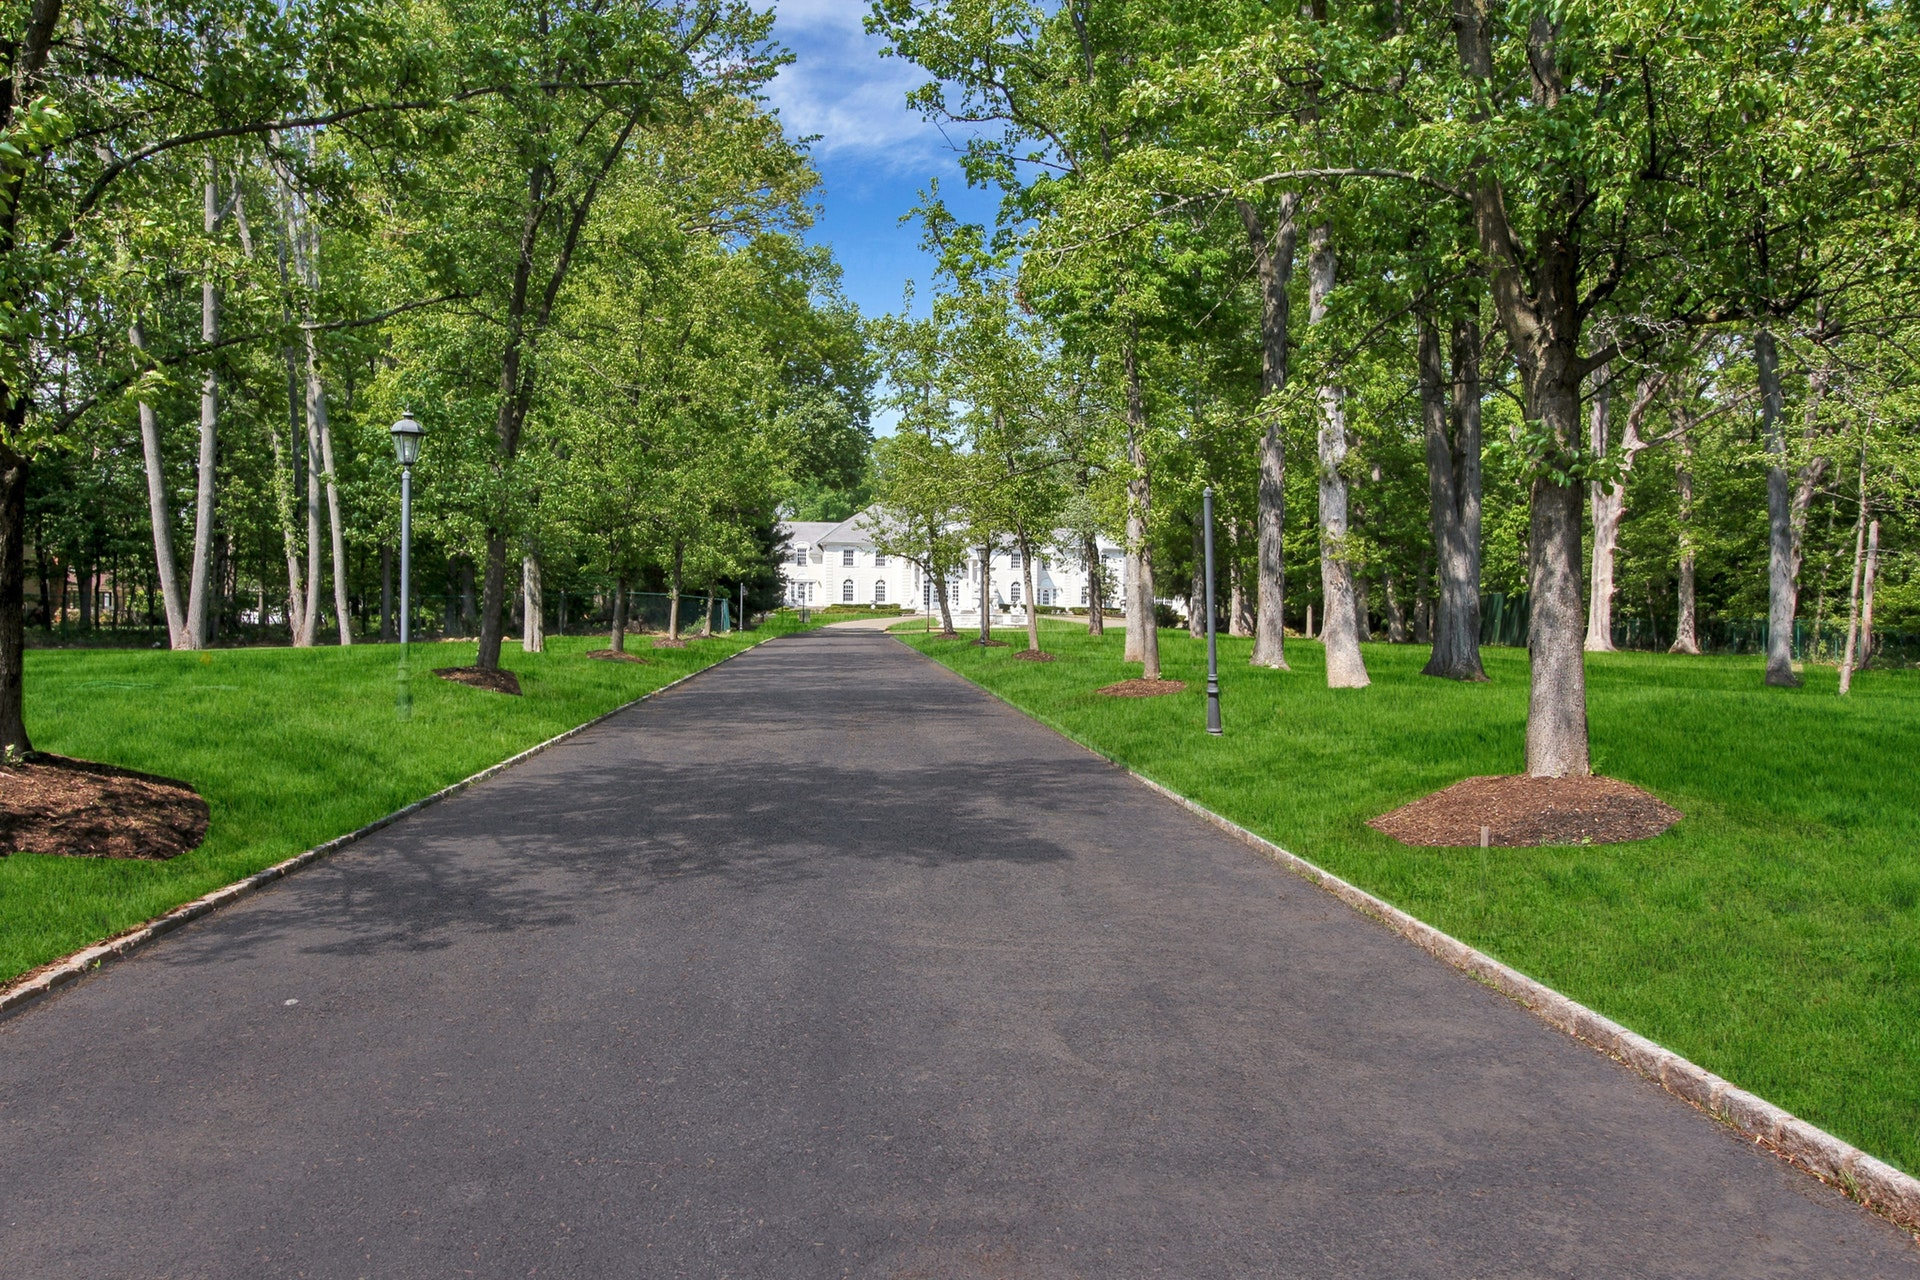 325 South Orange Avenue - Driveway